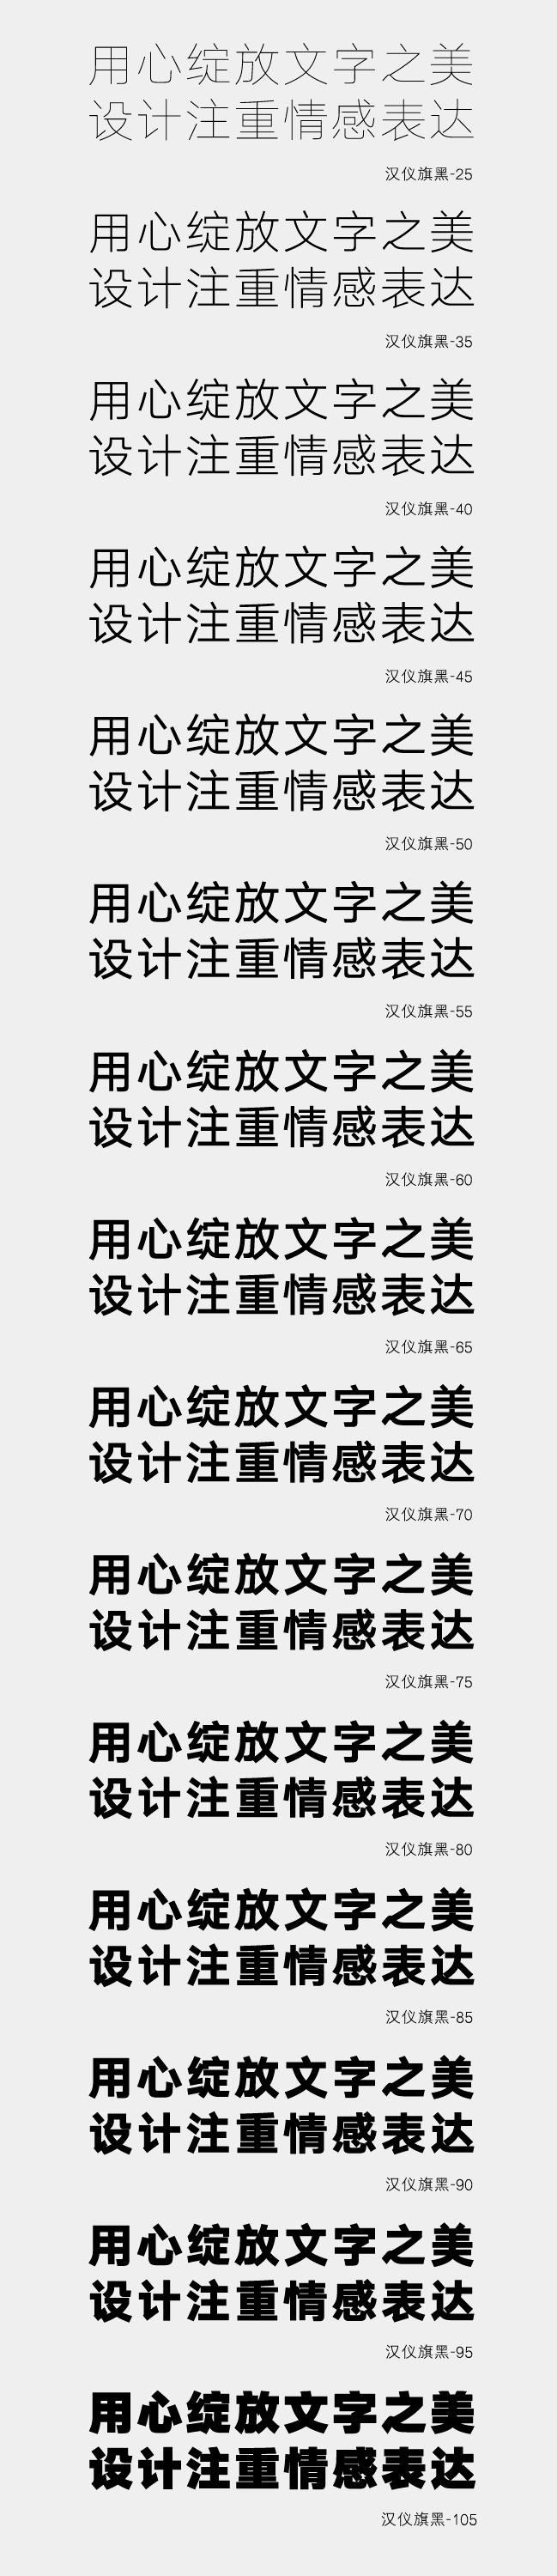 Chinese Web Fonts: Download Chinese Fonts